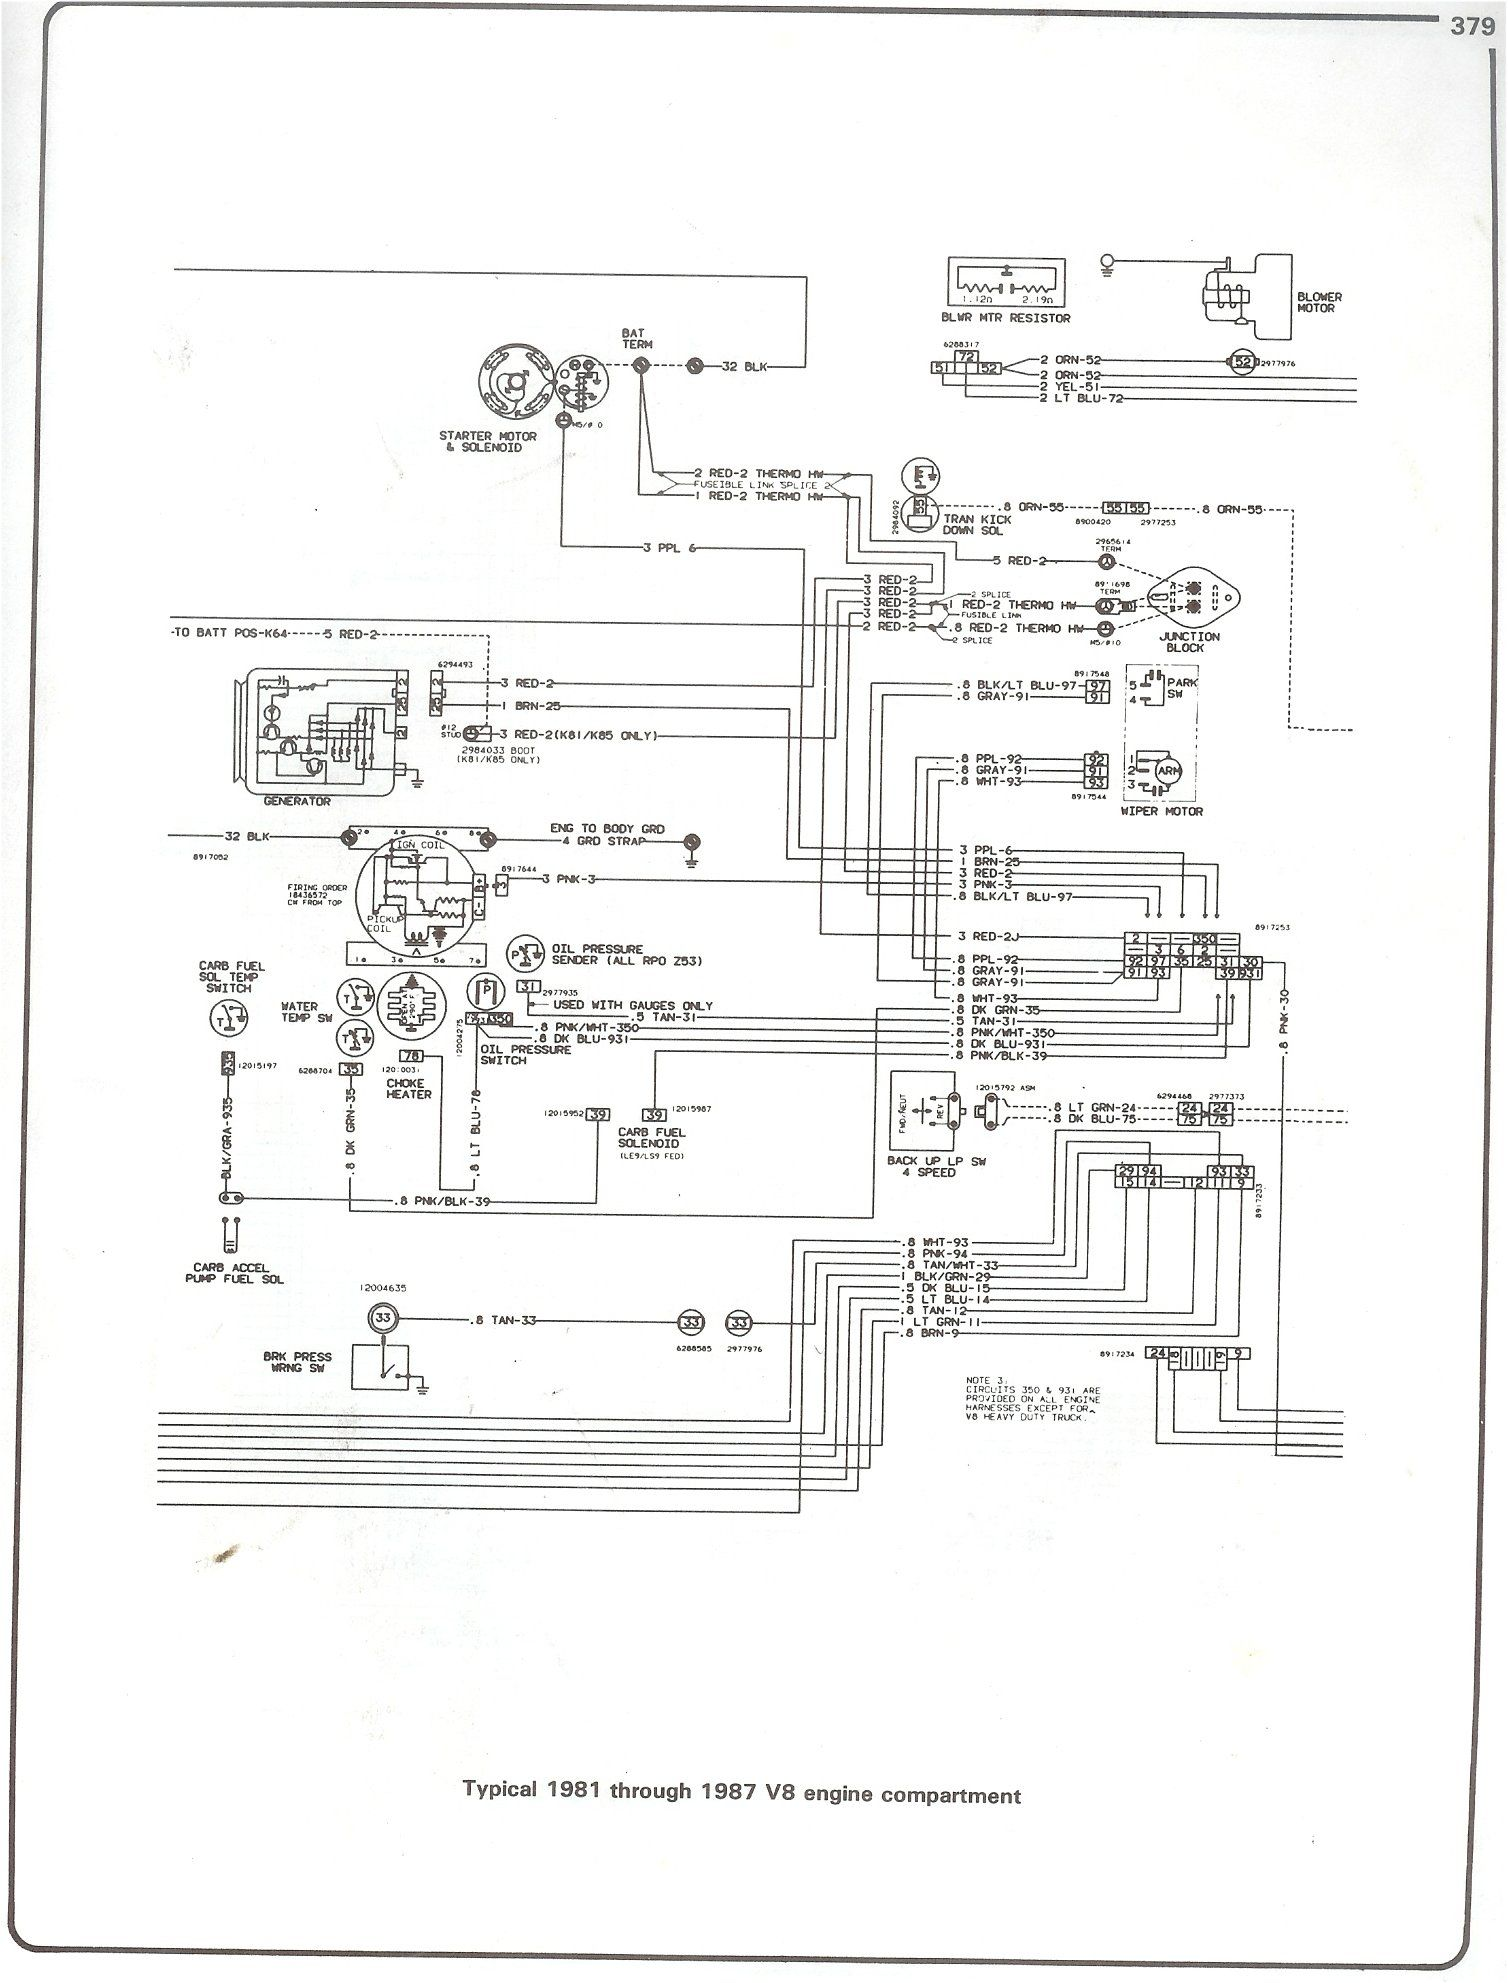 1987 chevy truck wiring harness wiring diagram centre 1987 chevy truck headlight wiring harness 1987 chevy truck wiring harness [ 1508 x 1983 Pixel ]